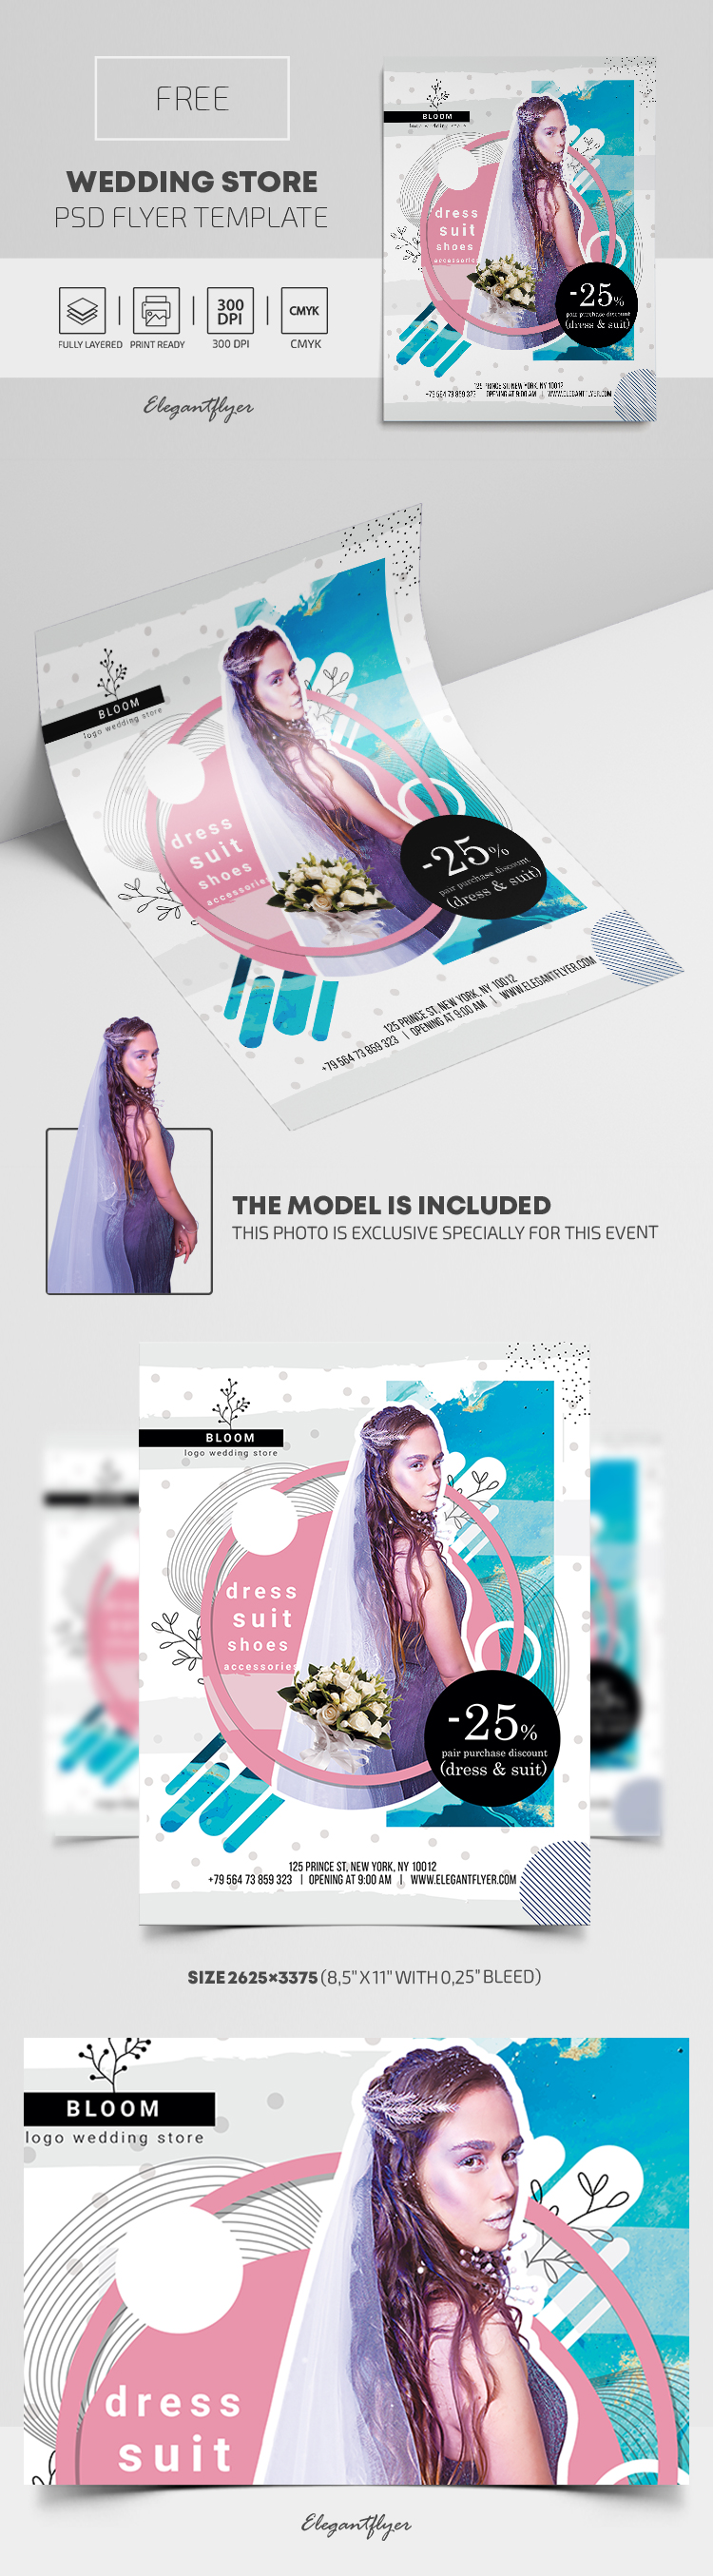 Wedding Store – Free PSD Flyer Template